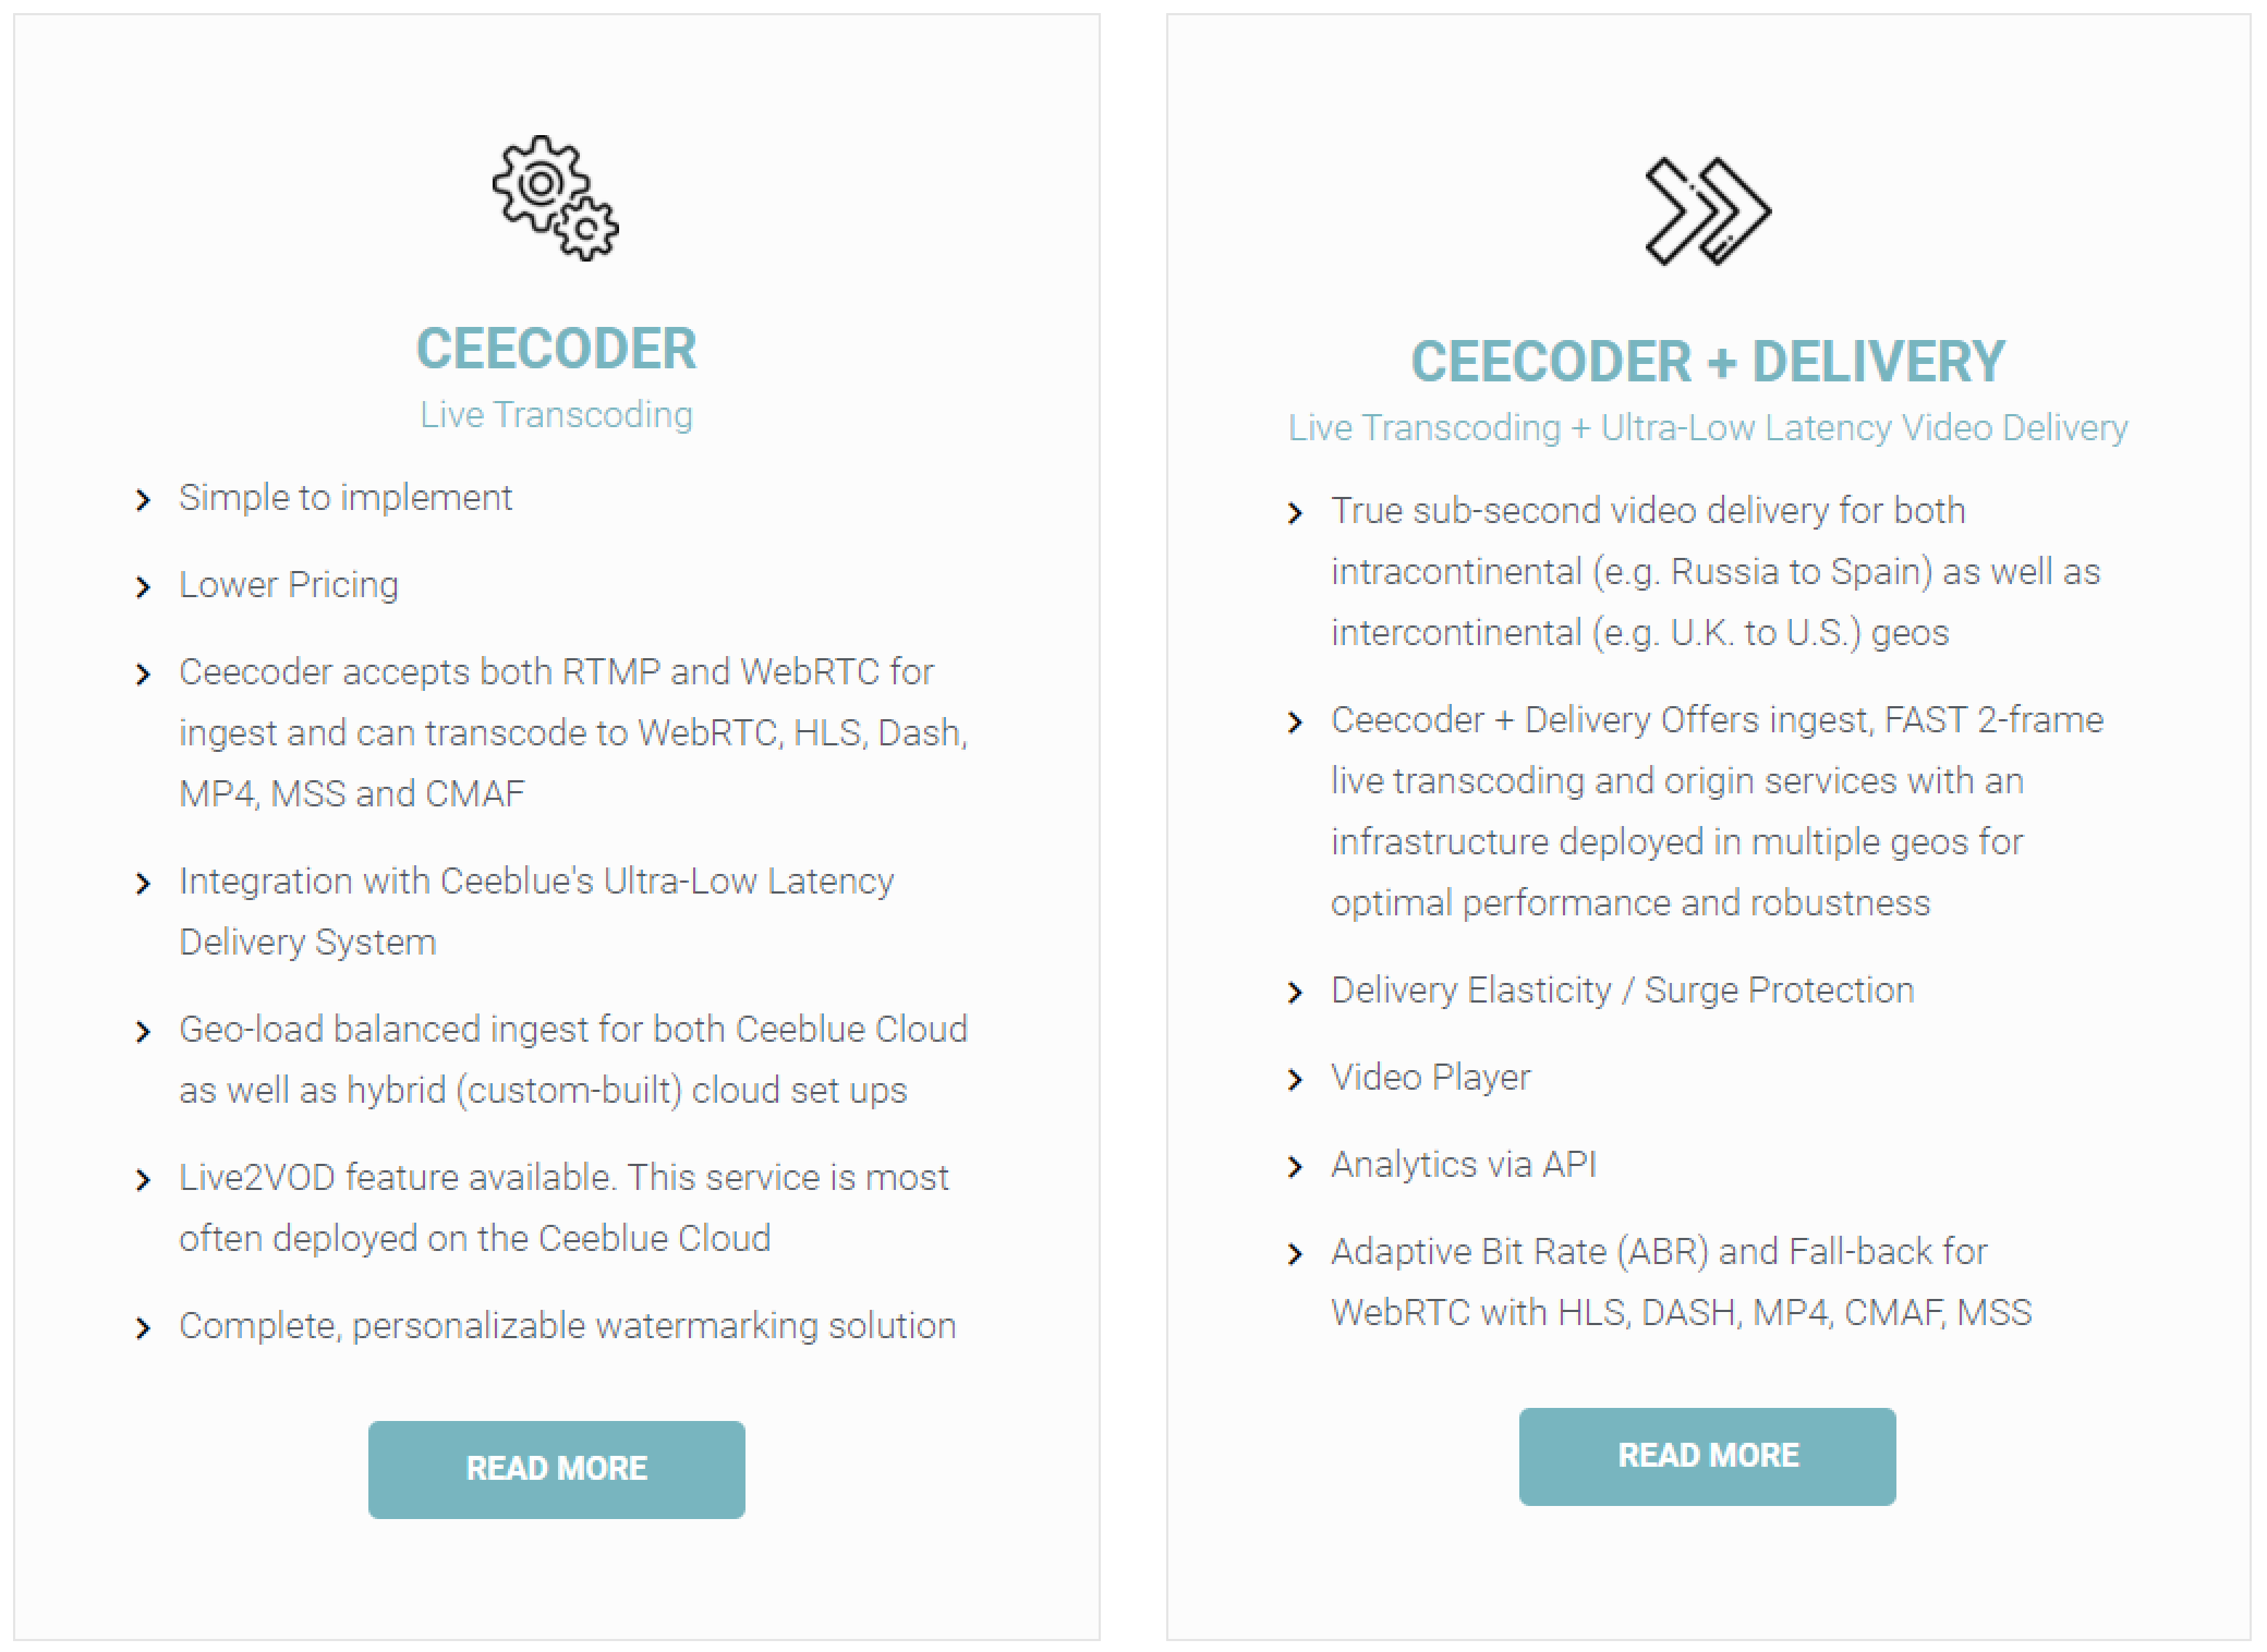 Ceecoder + Delivery